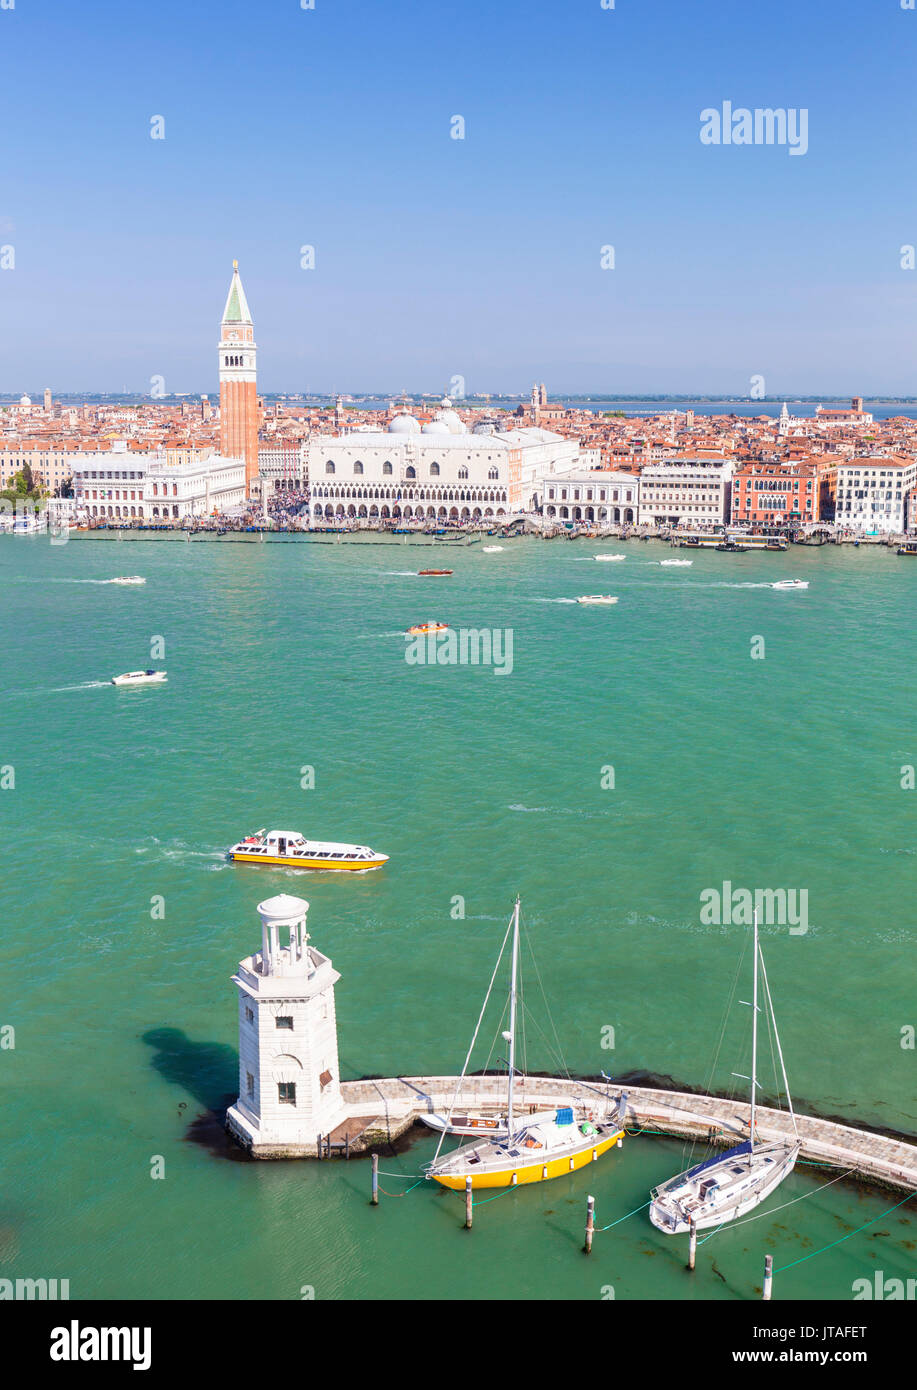 Campanile tower, Palazzo Ducale (Doges Palace), Bacino di San Marco (St. Marks Basin), Venice, UNESCO, Veneto, Italy, Europe - Stock Image